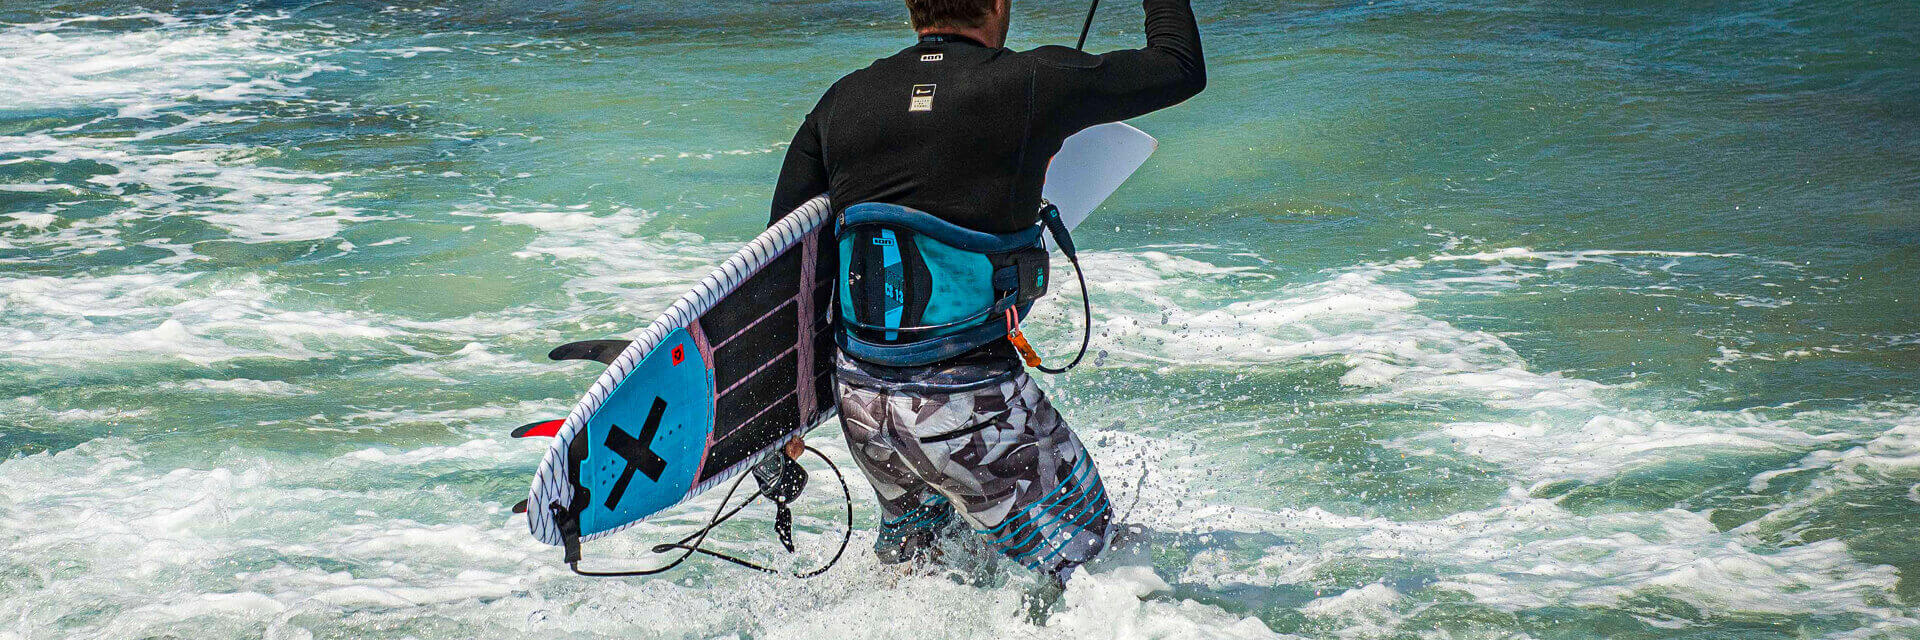 Duotone Kiteboarding Traction Pad Pro Back 2020